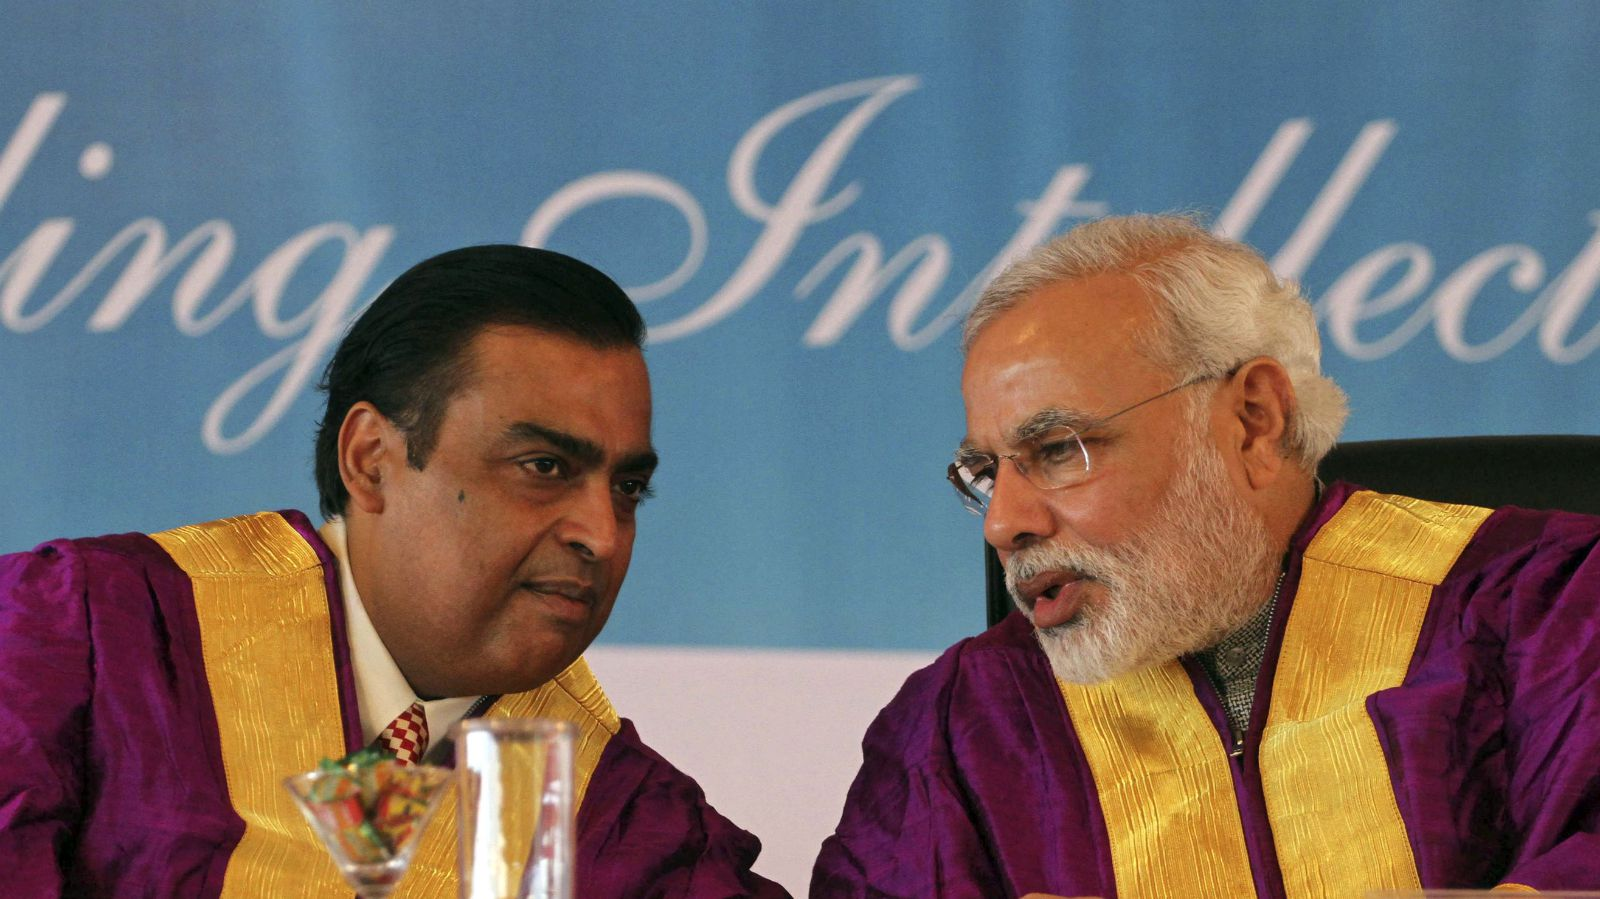 Gujarat state Chief Minister Narendra Modi, right, speaks with Chairman and Managing Director of Reliance Industries Limited Mukesh Ambani during the convocation ceremony of Pandit Deendayal Petroleum University (PDPU) in Gandhinagar, in the western Indian state of Gujarat, Saturday, Oct. 19, 2013. Modi is India's main opposition Bharatiya Janata Party's candidate for prime minister if it wins national elections next year.